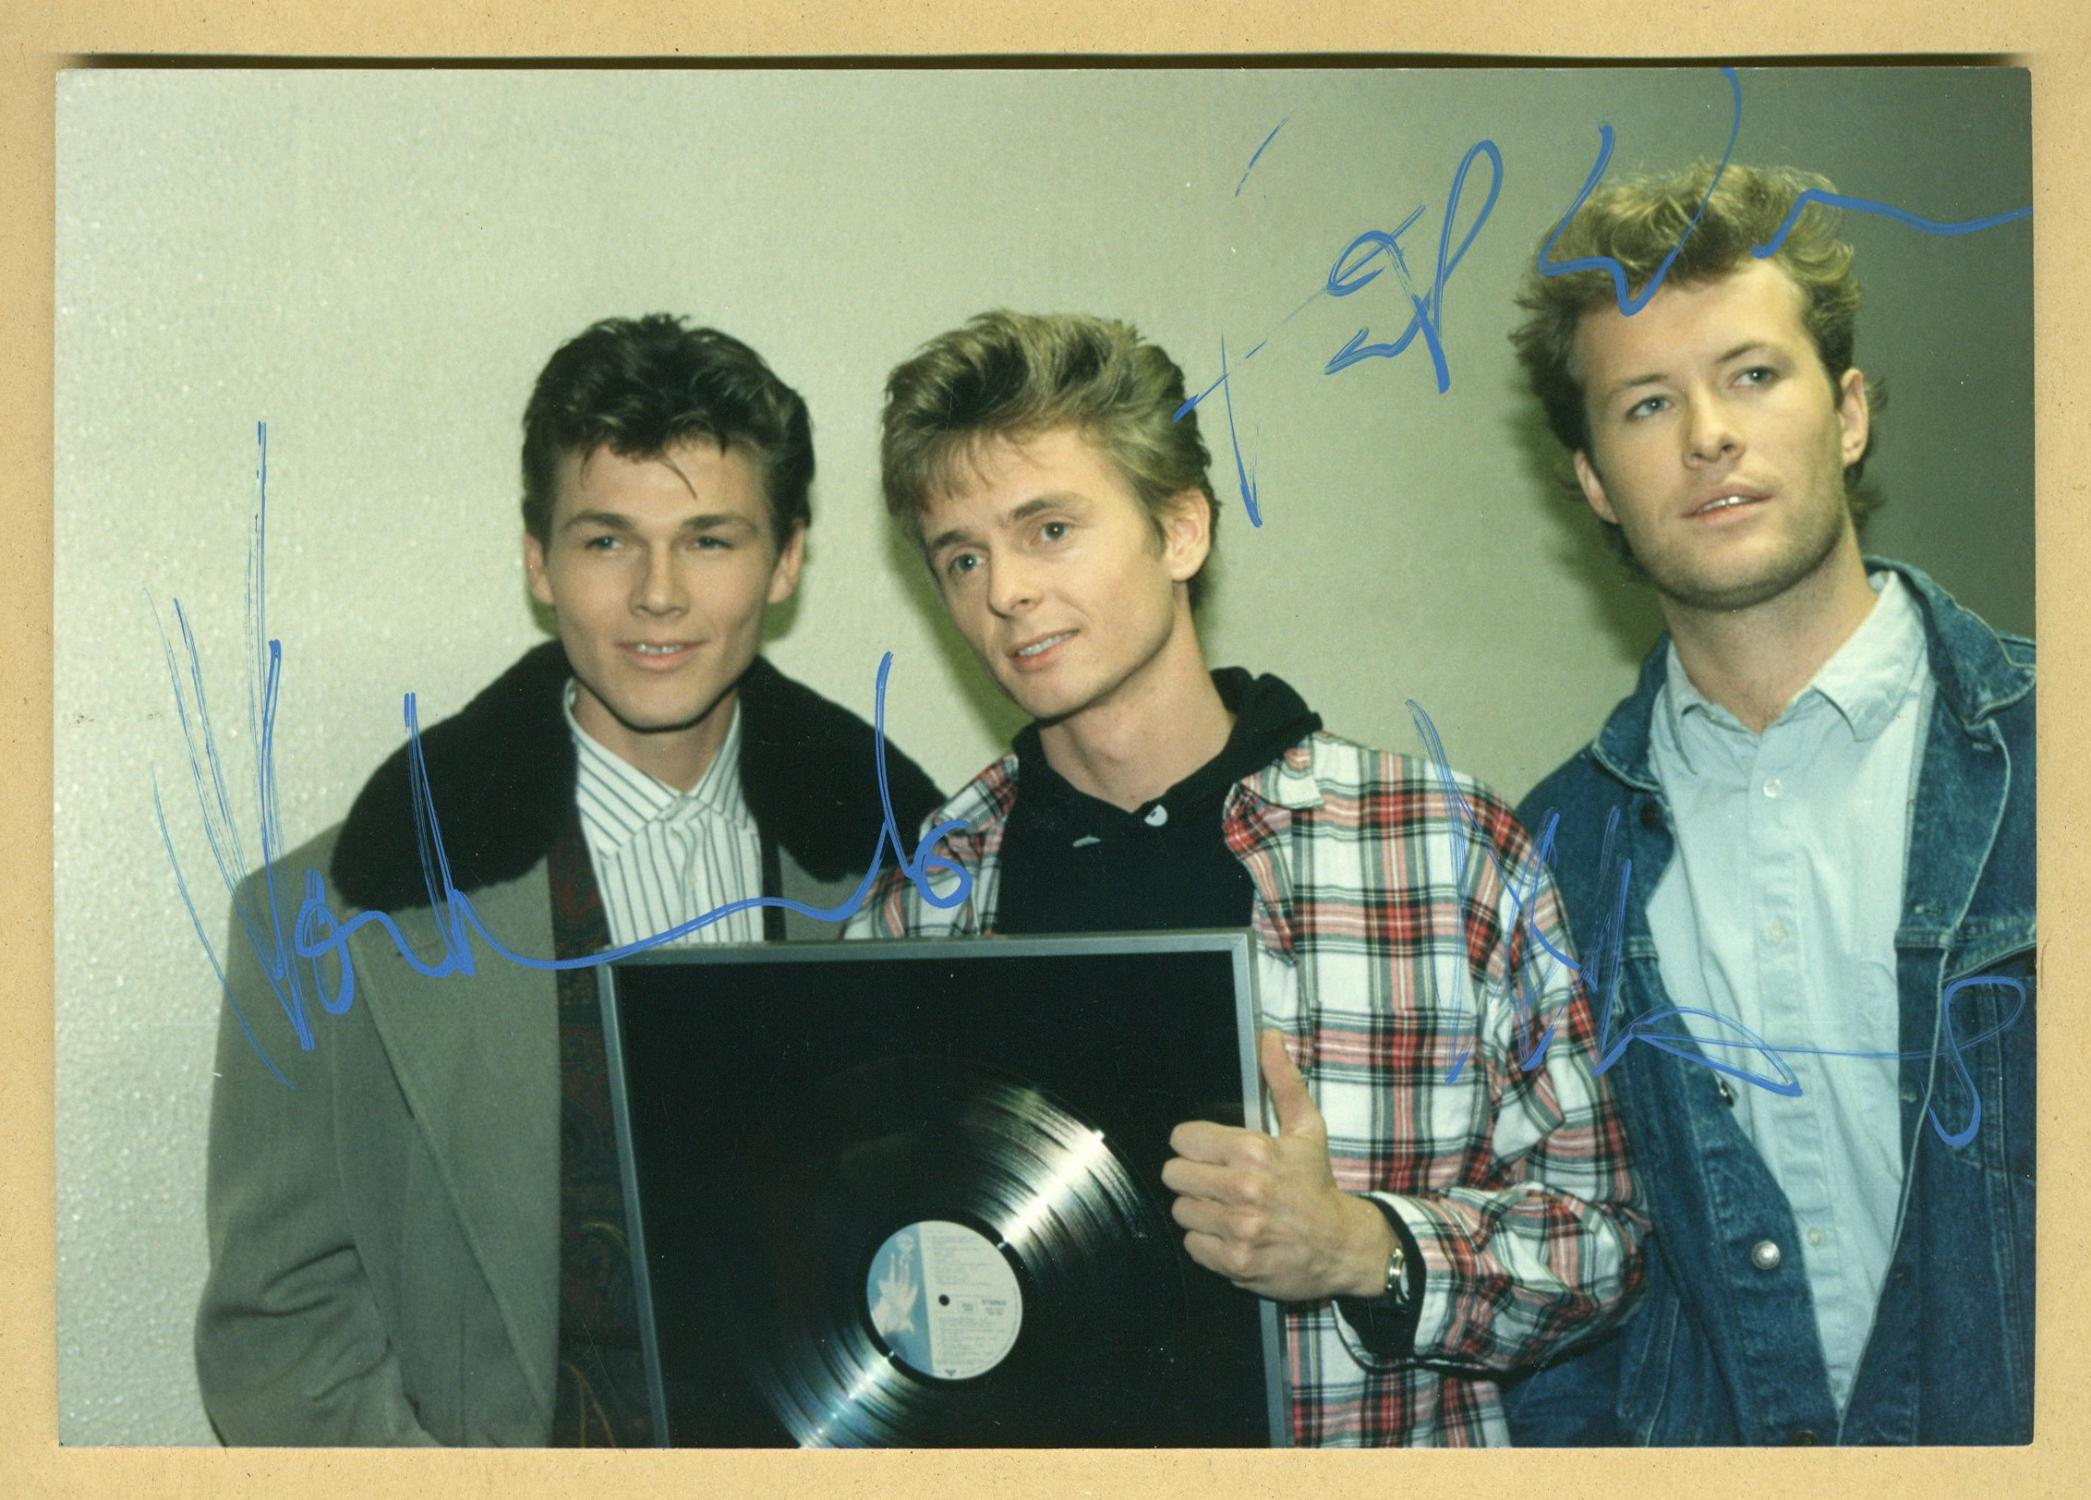 Aha__Early_signed_photo__Paris_80s_Aha__Norwegian_band_Très_bon